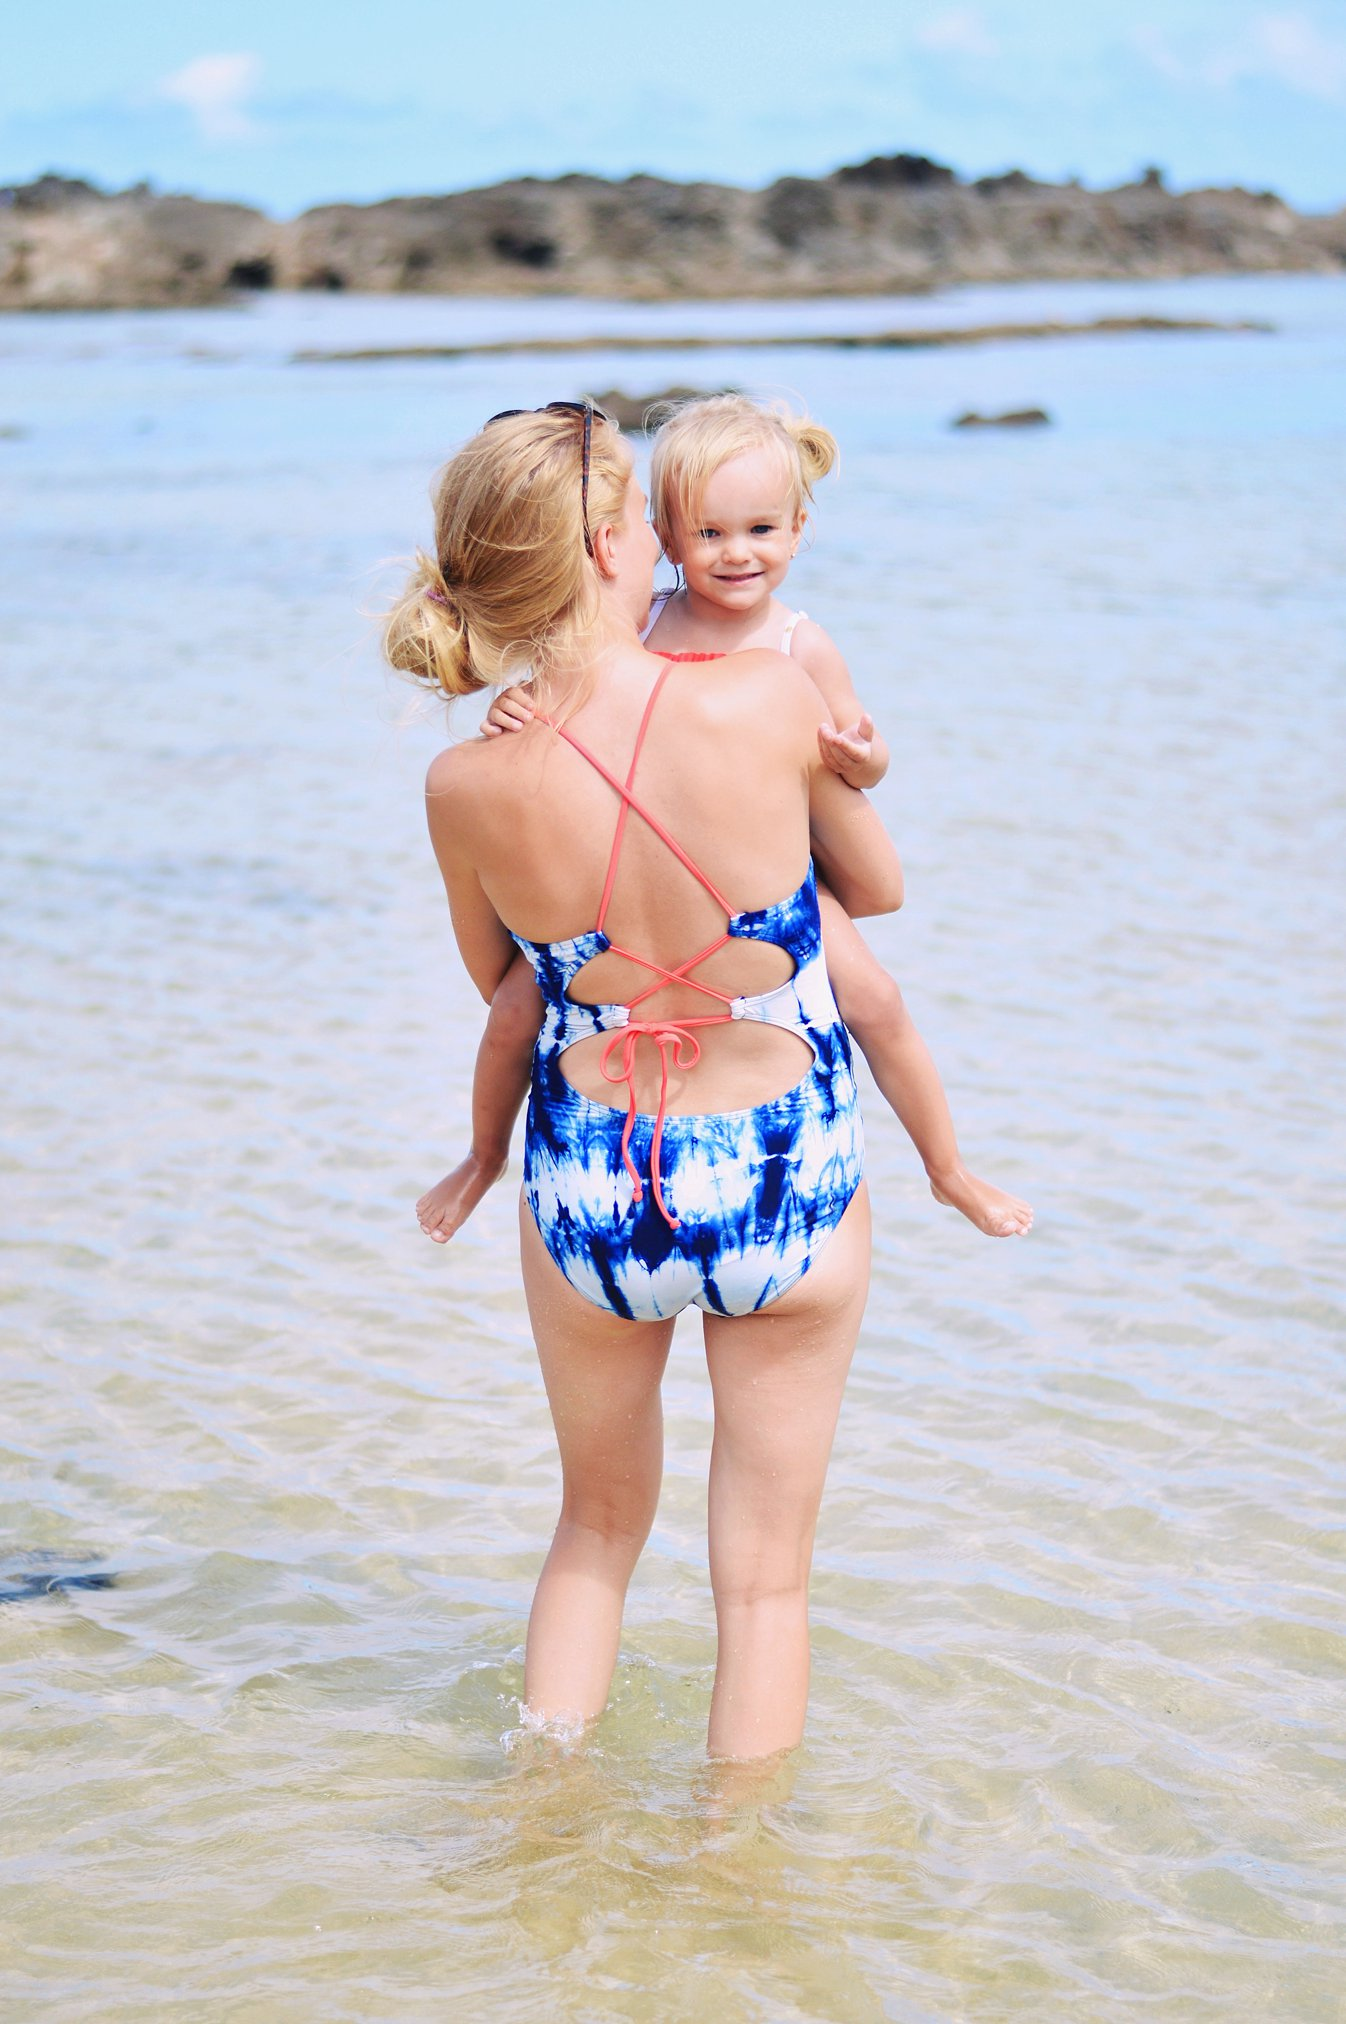 d37c502519cb1 Three Awesome Maternity Swimsuit Styles That Are Not Maternity by Rachael  Burgess